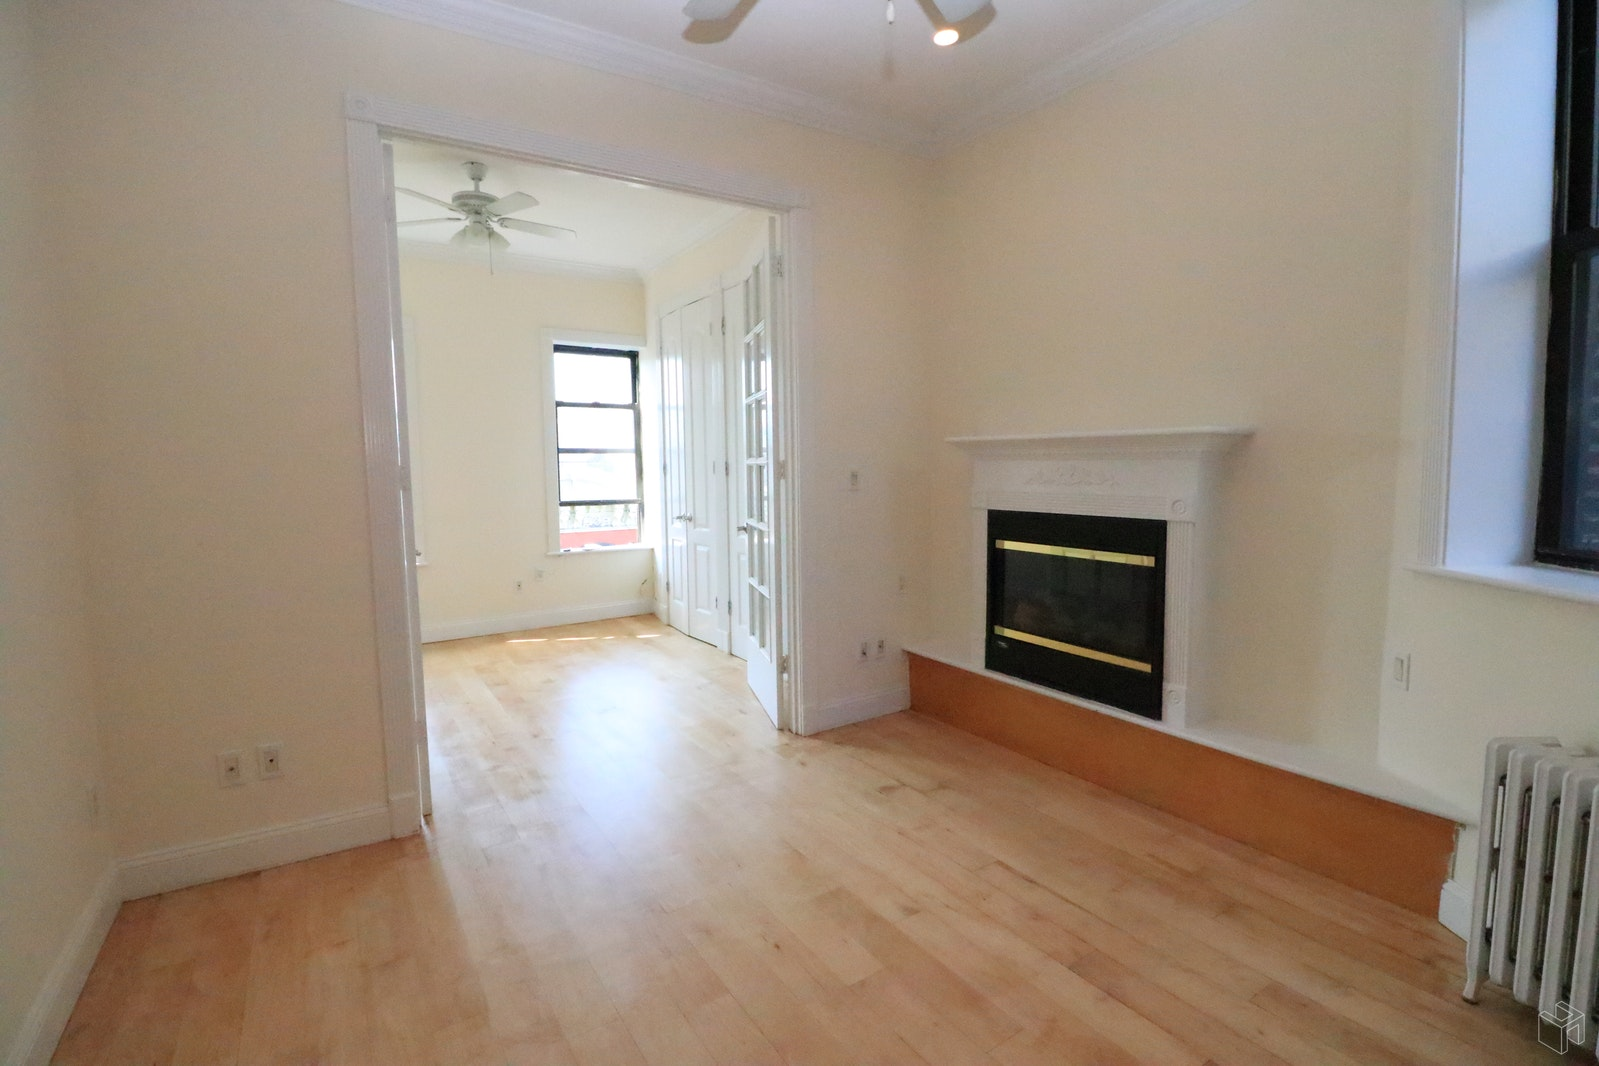 73 East 3rd Street D1, East Village, NYC, 10003, Price Not Disclosed, Rented Property, Halstead Real Estate, Photo 2